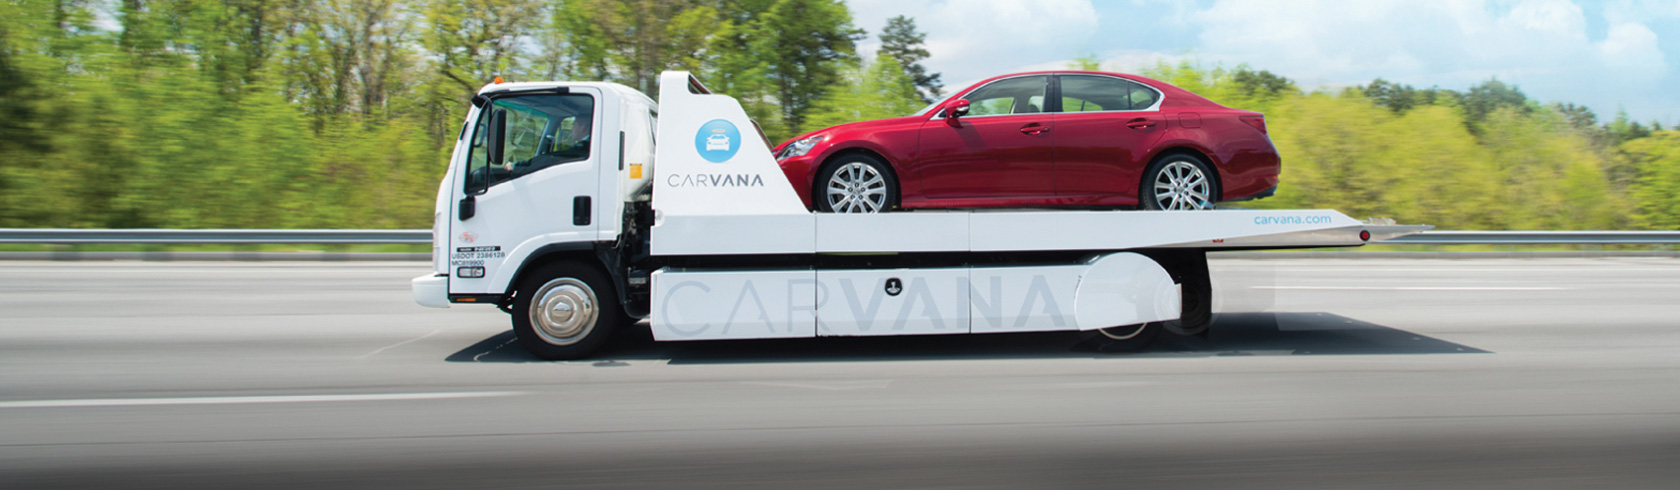 Carvana truck carrying a car to be delivered to a buyer